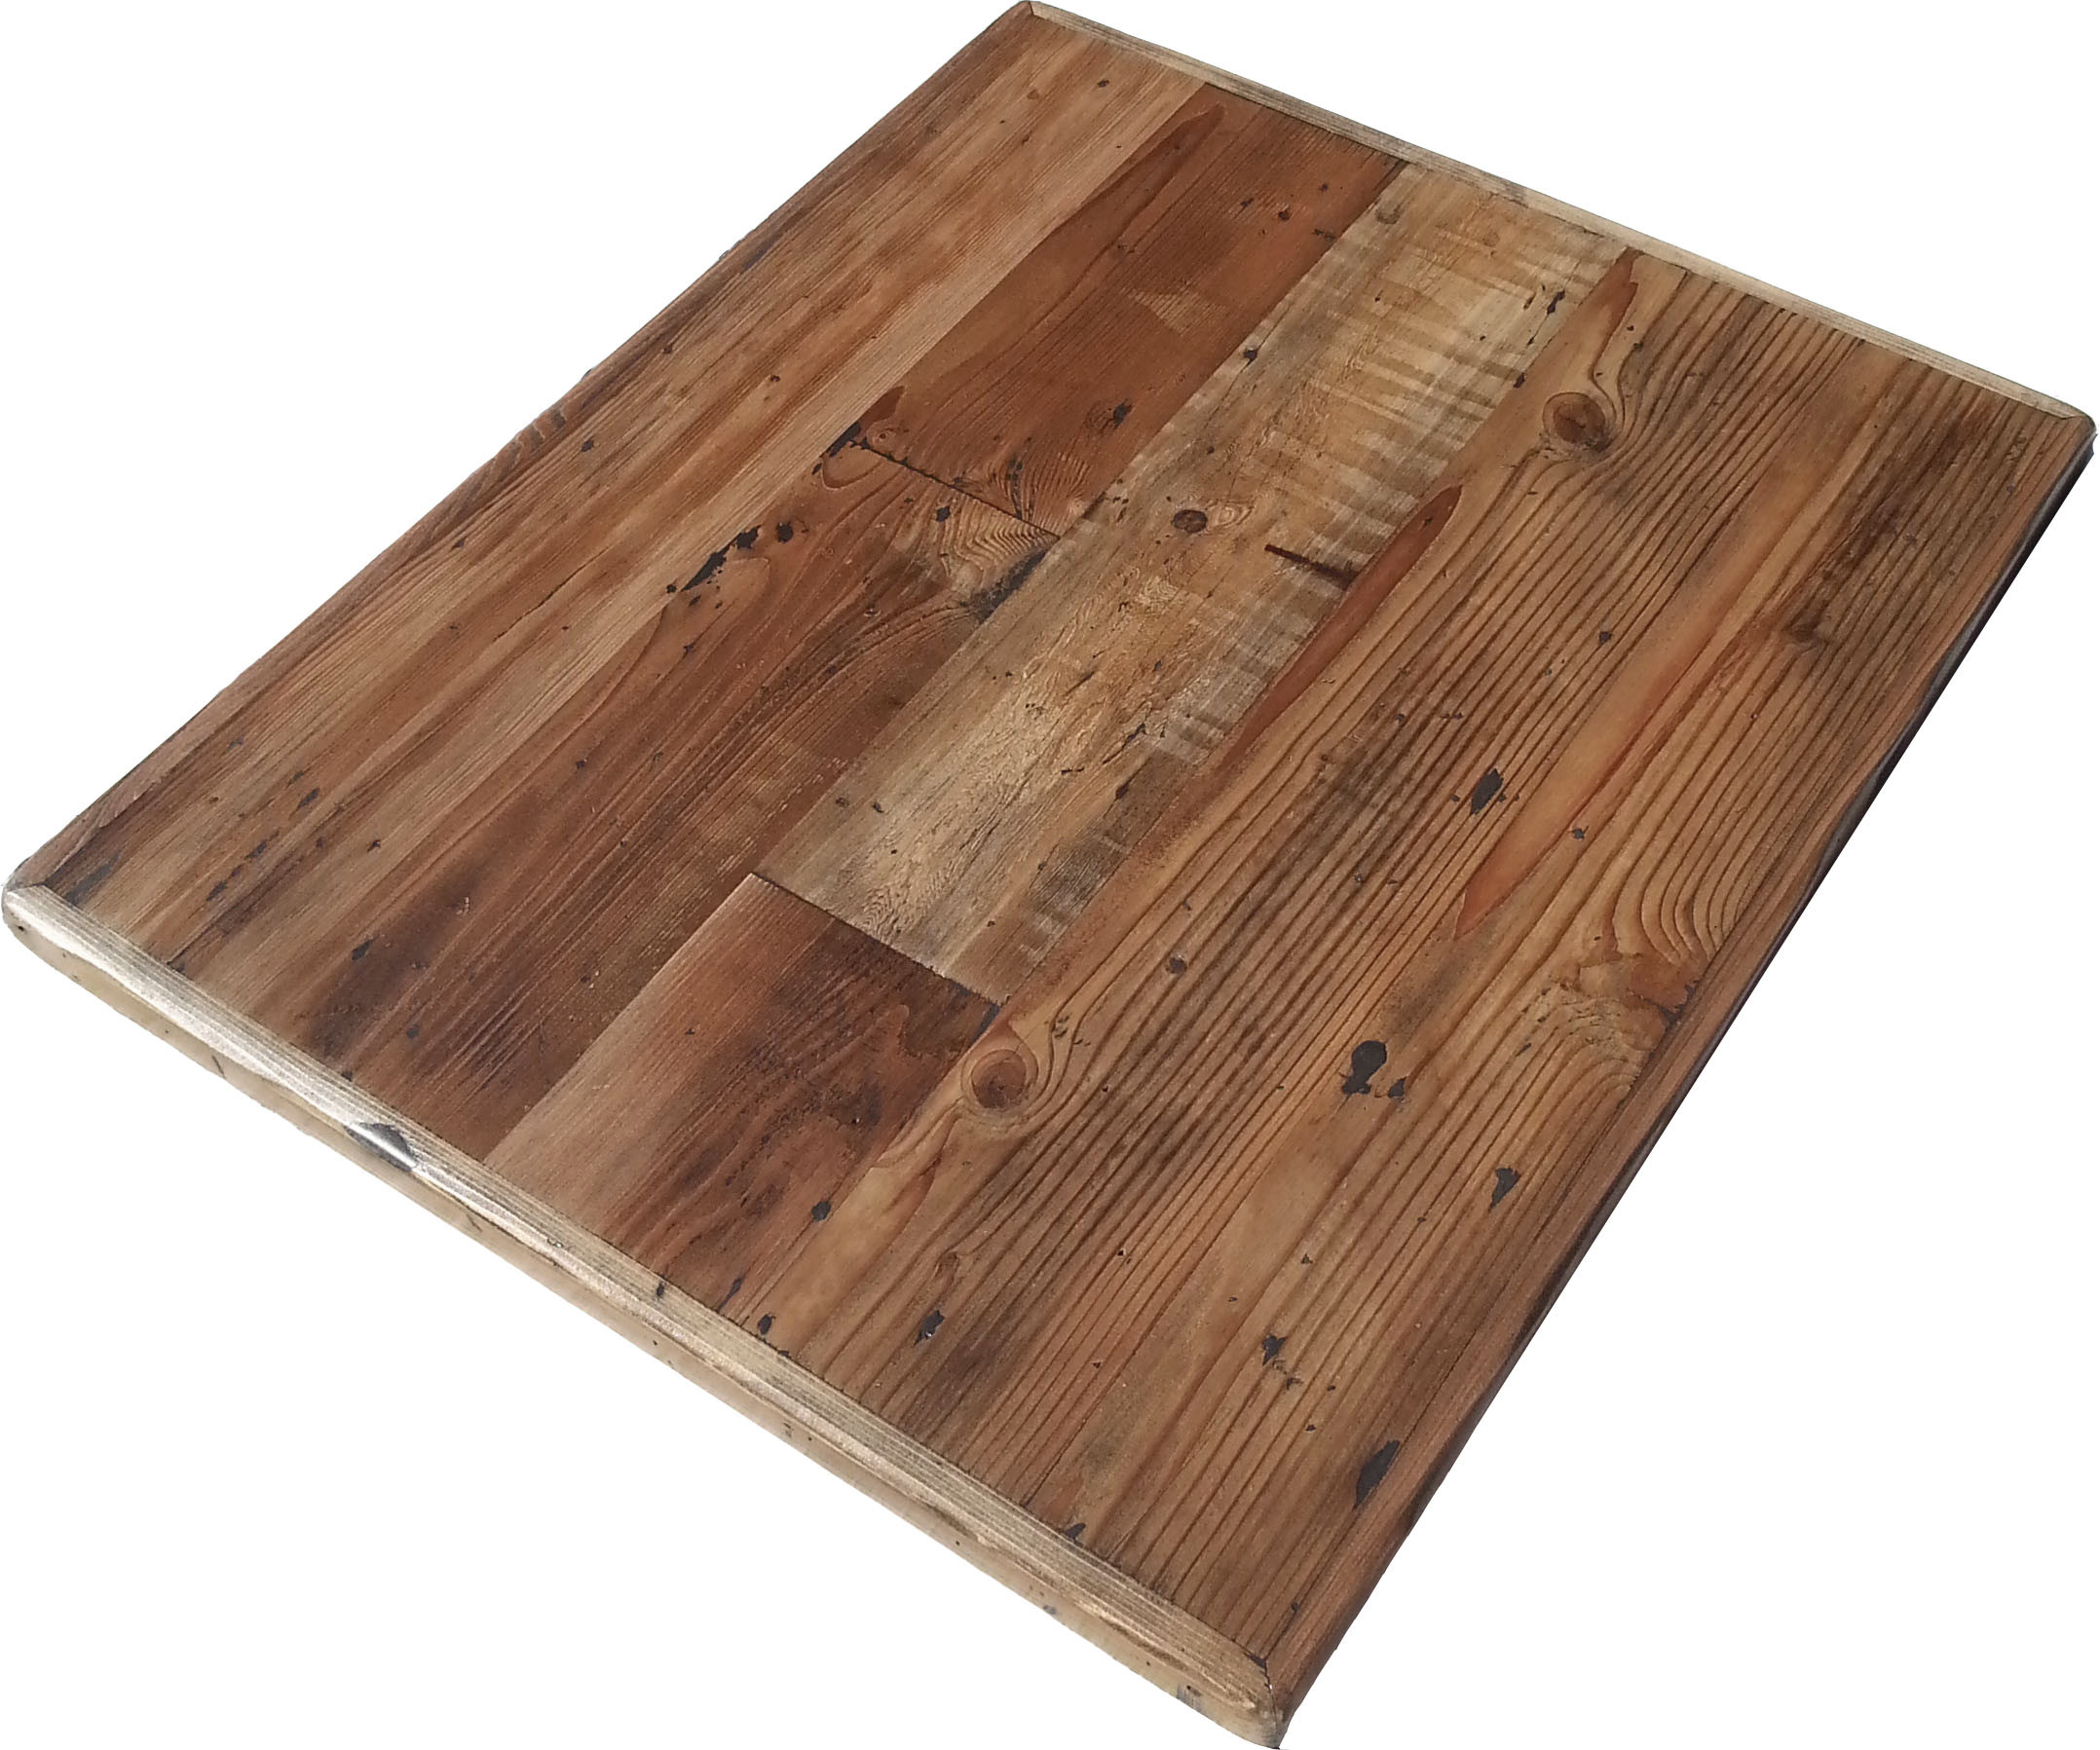 Captivating Reclaimed Doug Fir Tabletop